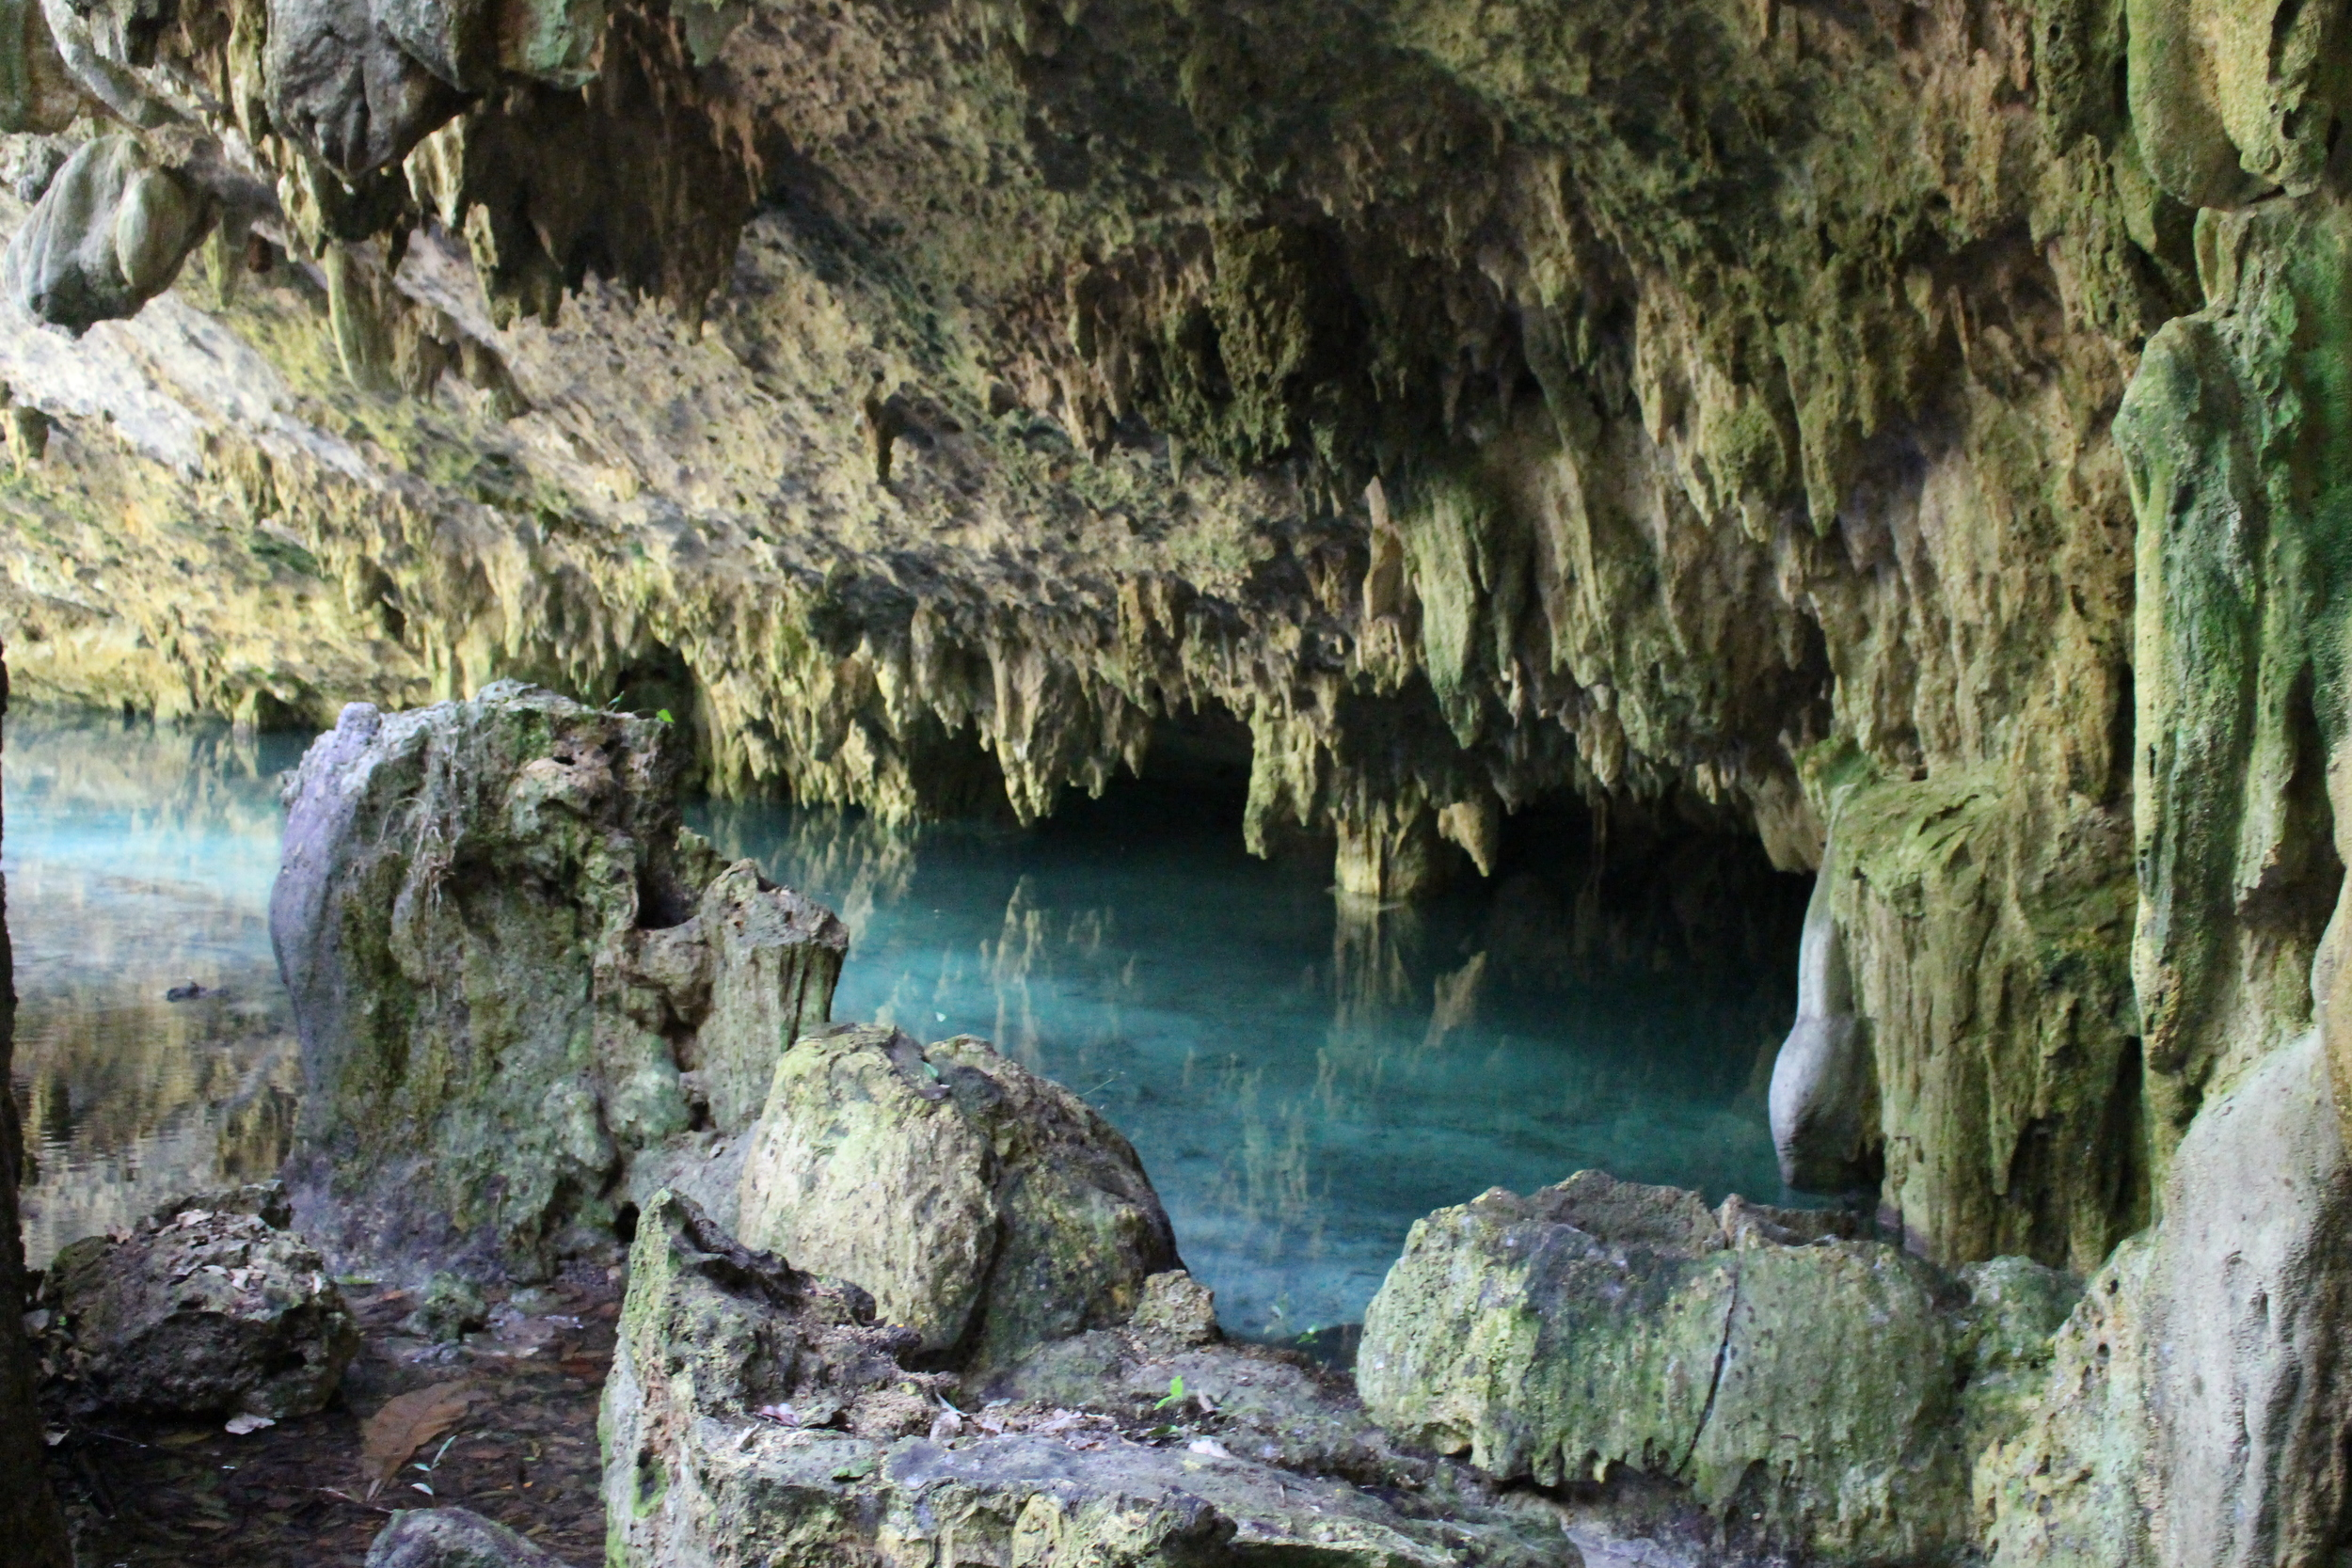 Sac Actun Caves from the surface.